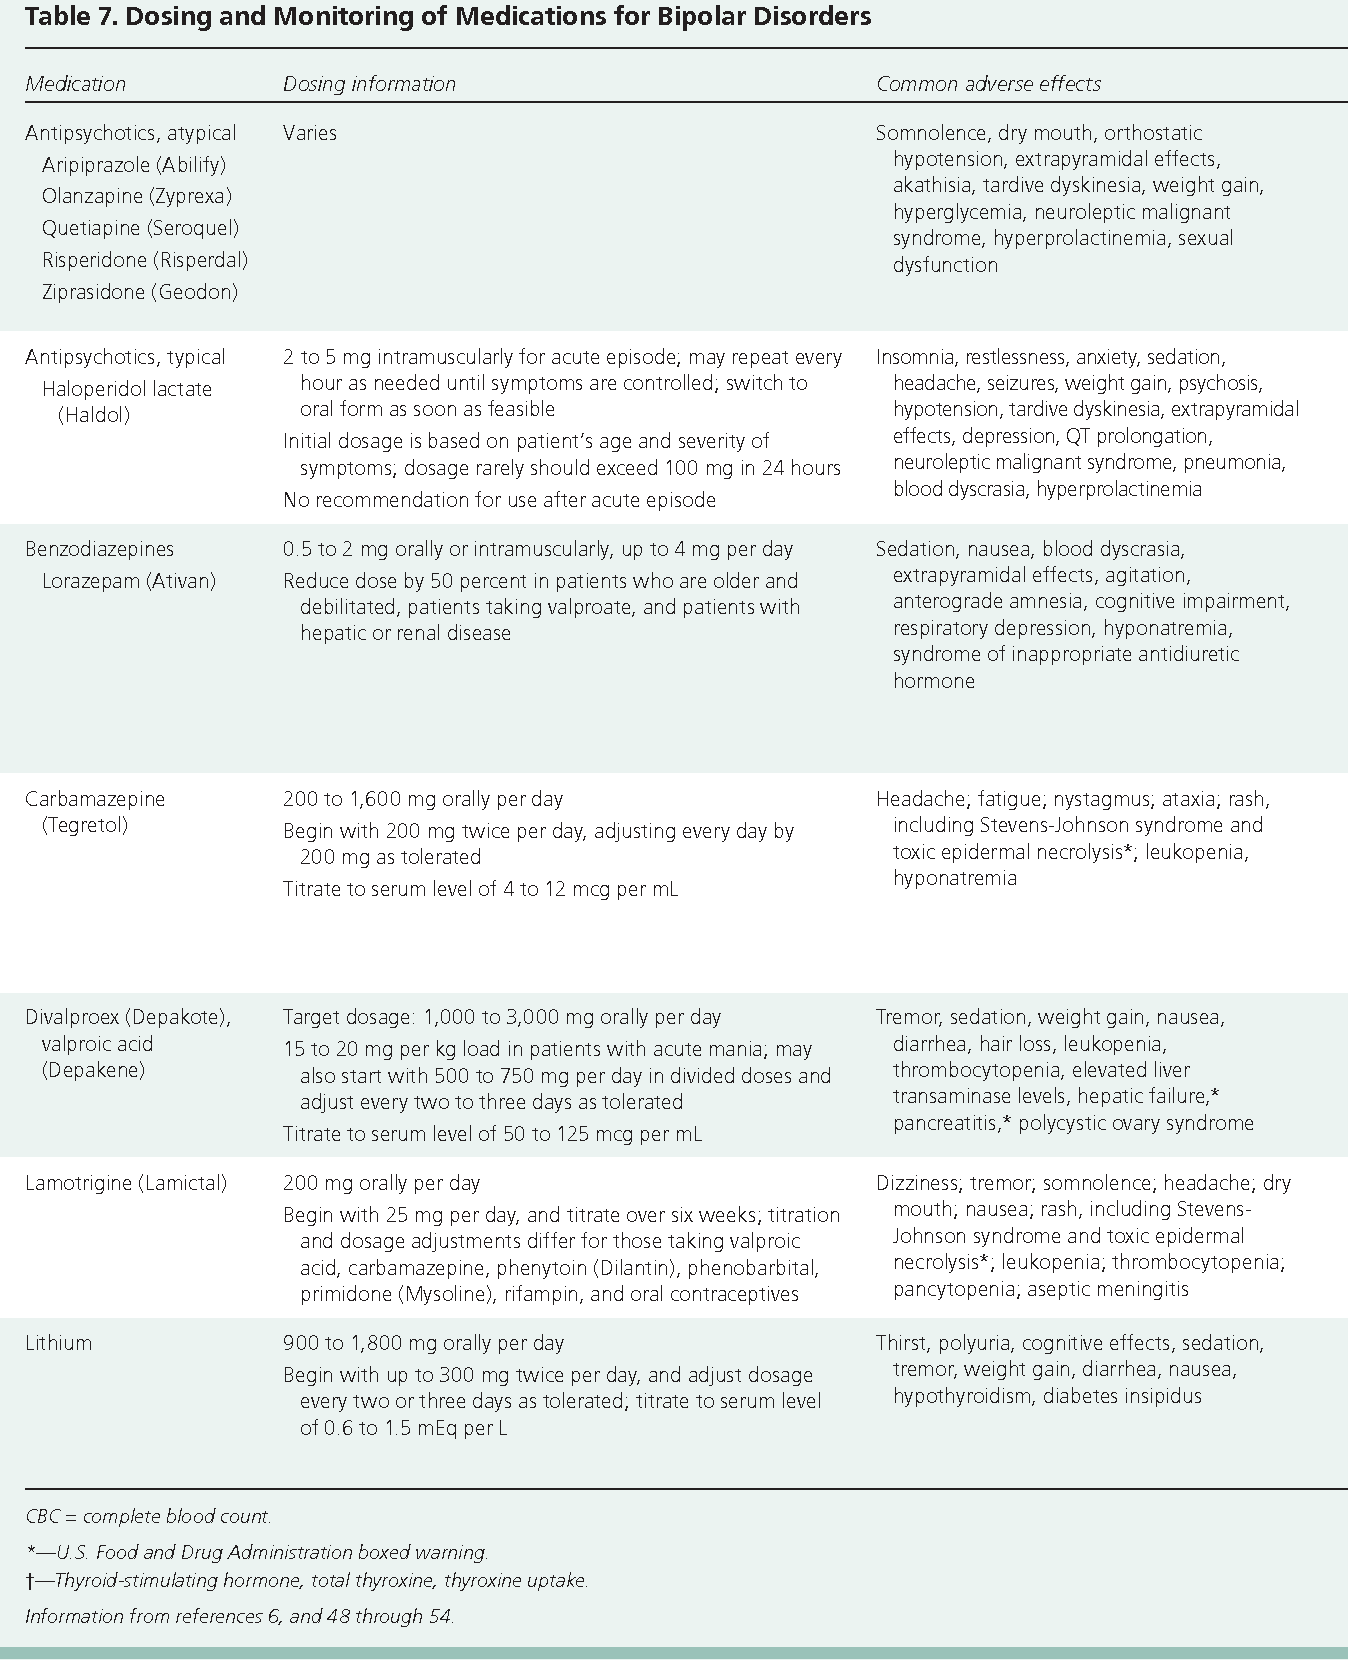 Table 7 from Bipolar disorders: a review  - Semantic Scholar